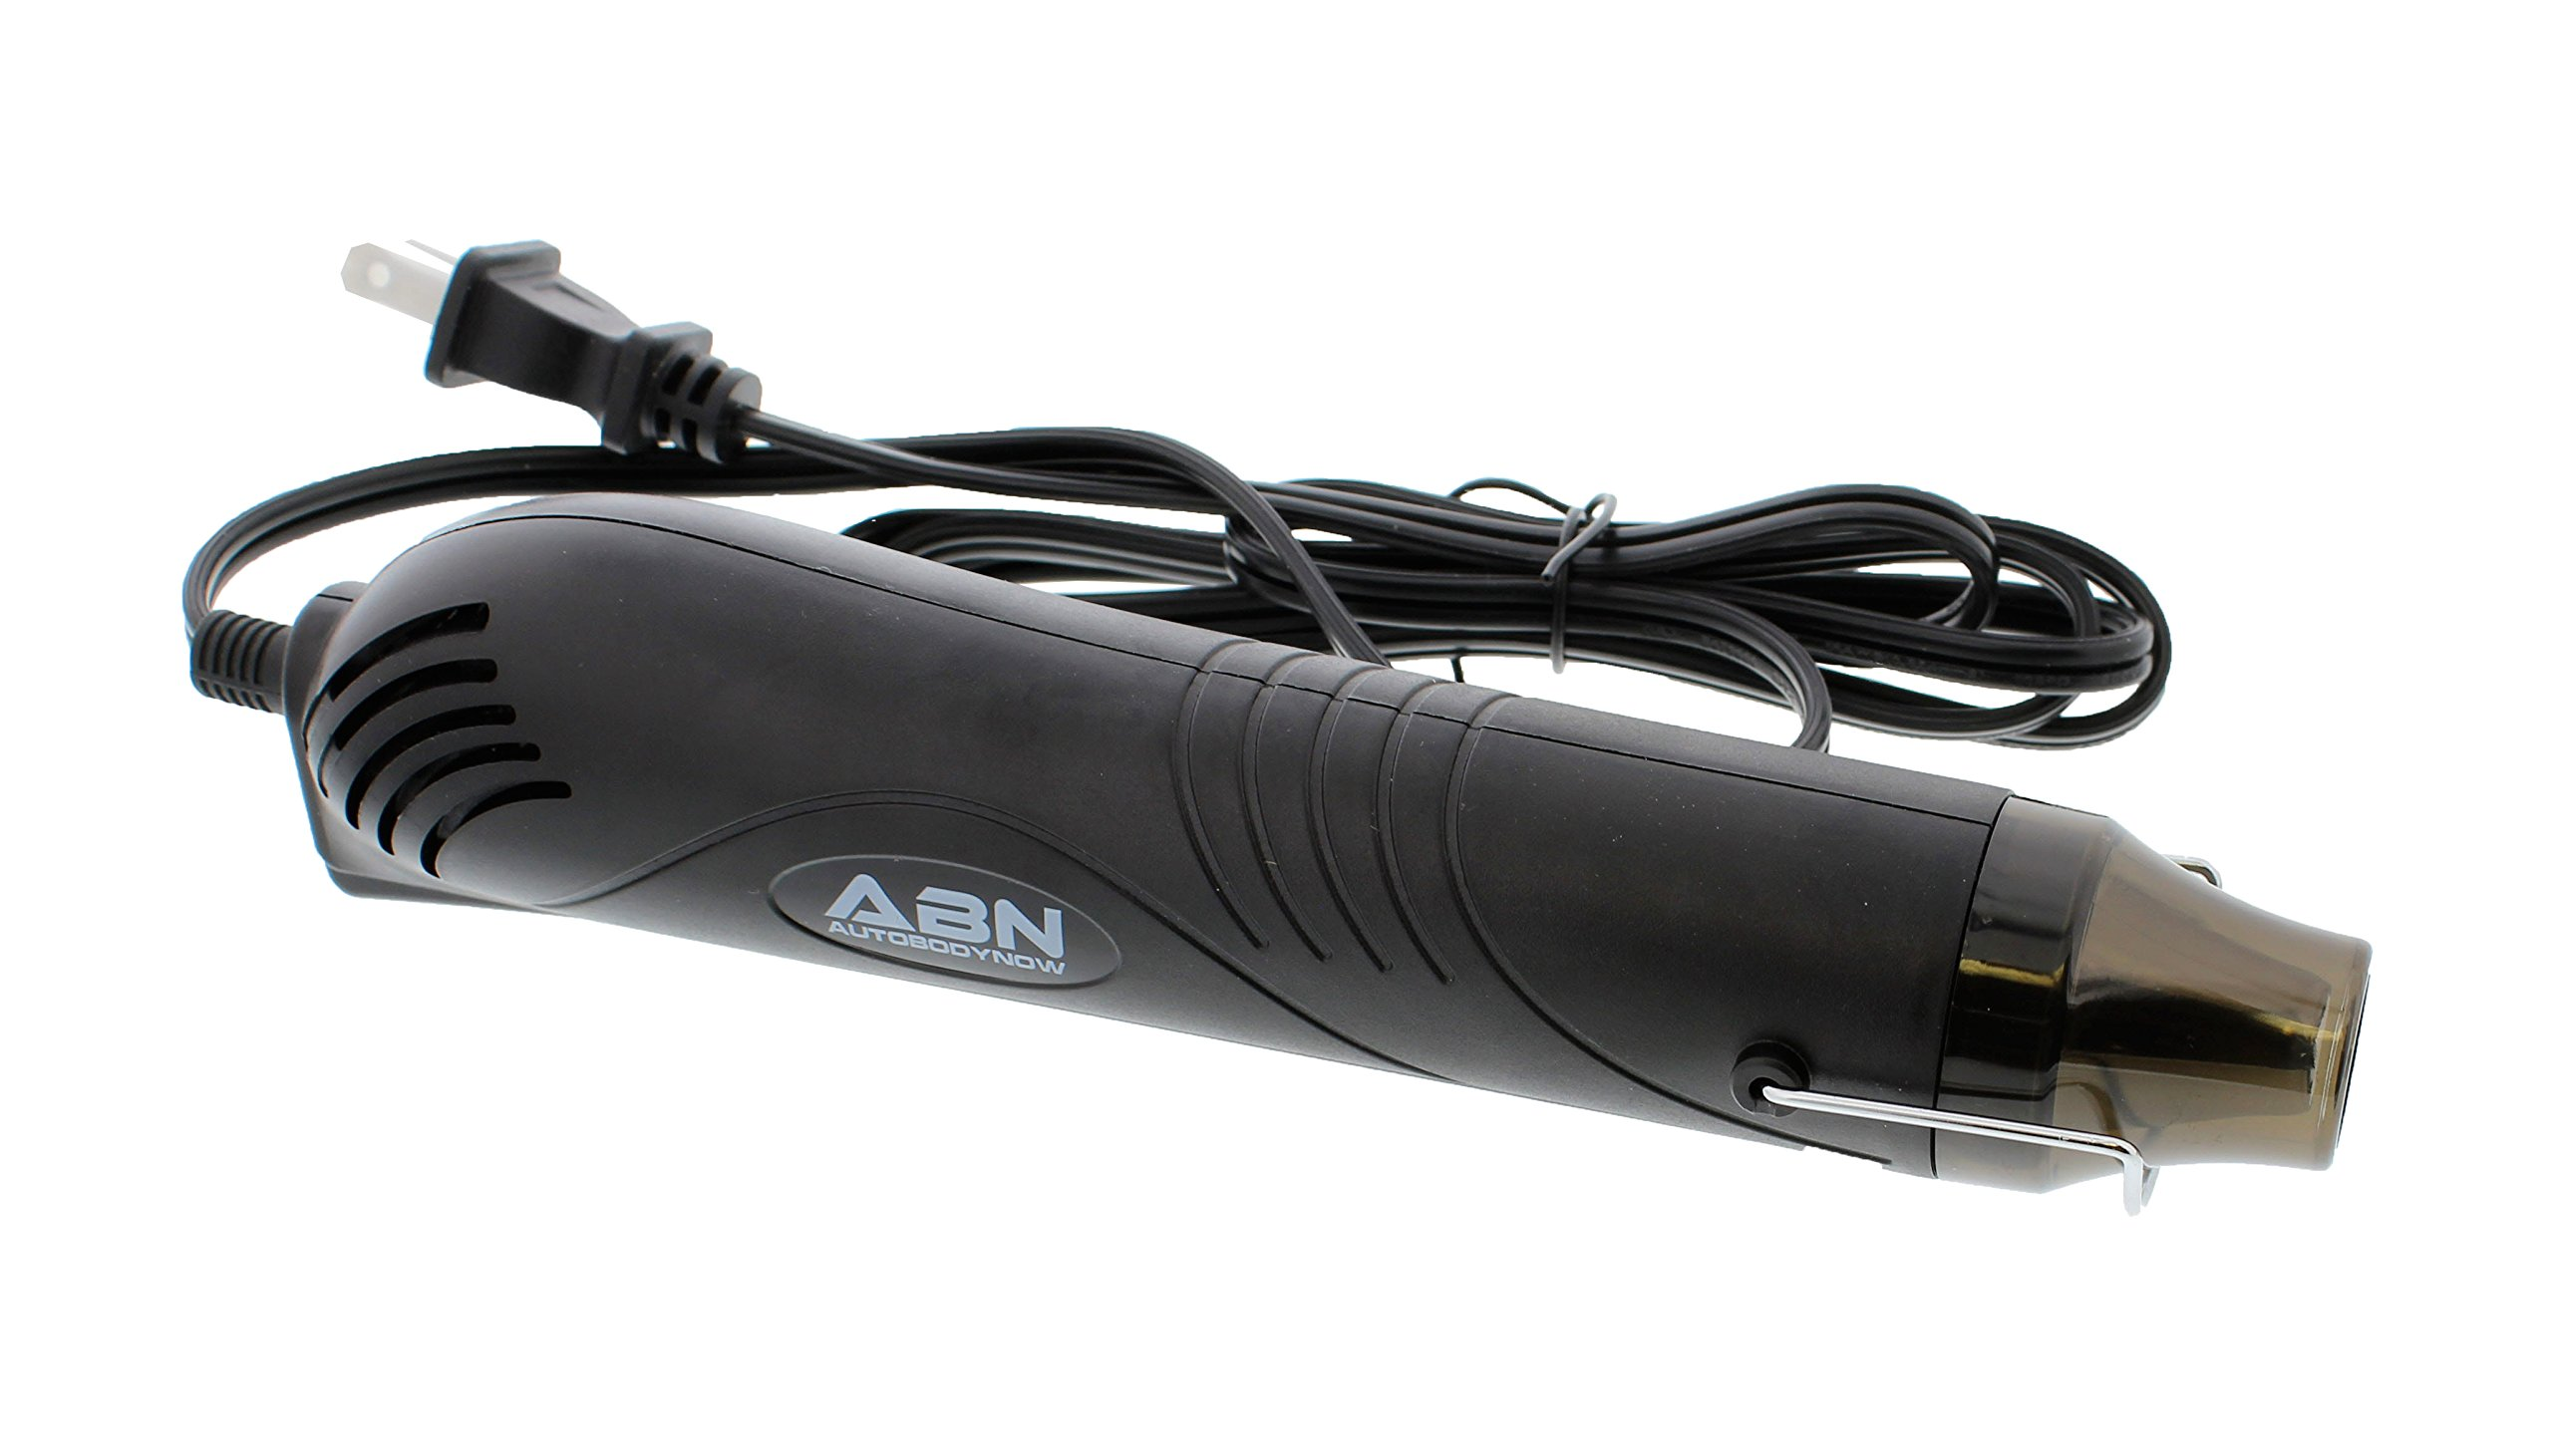 ABN Mini Heat Gun - Great for Heat Shrink Tubings and Drying - 120V, 60Hz, 300W